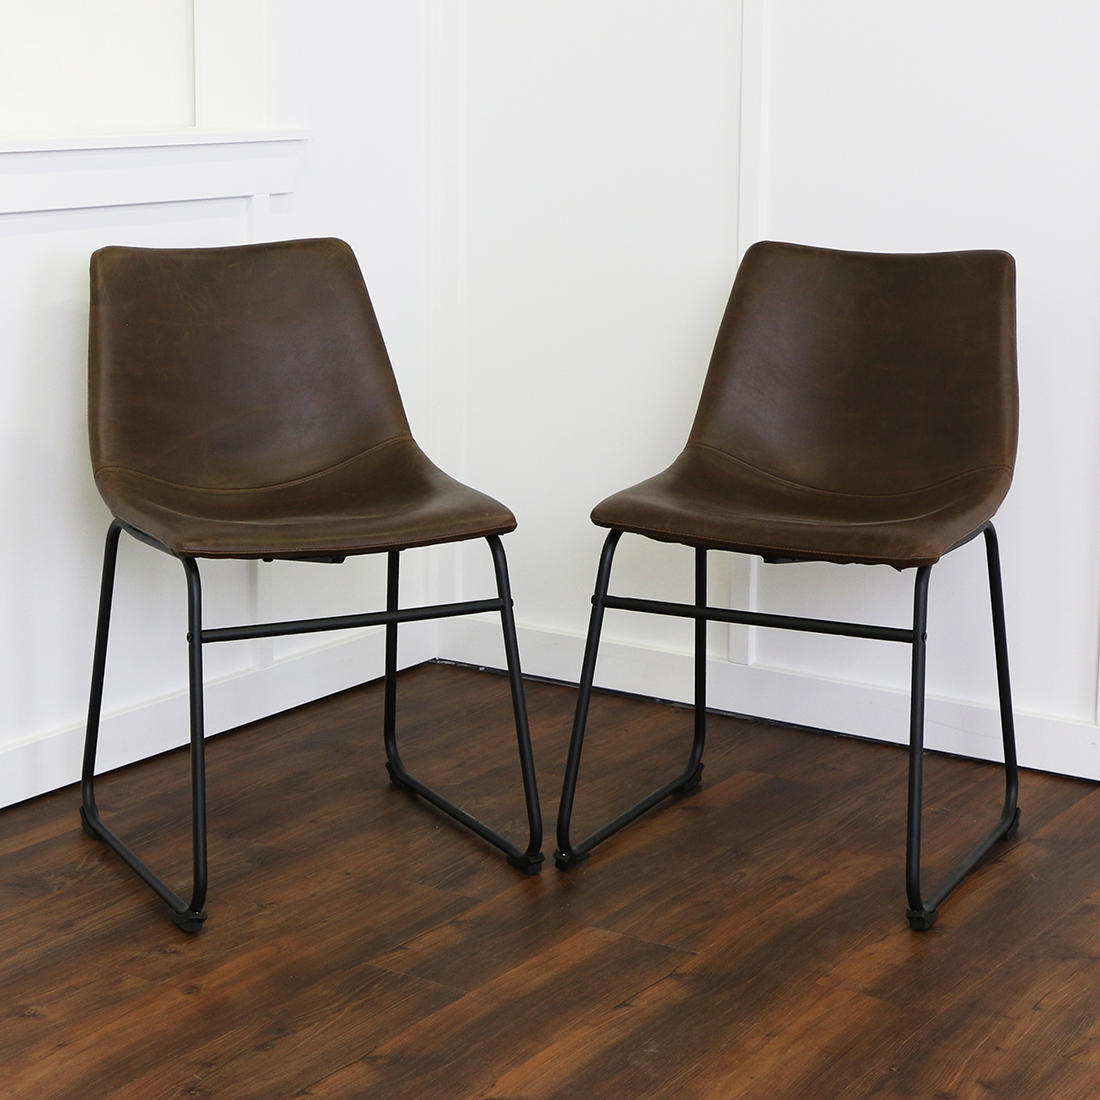 W. Trends Faux Leather Dining Chairs, 2 pk. - Brown